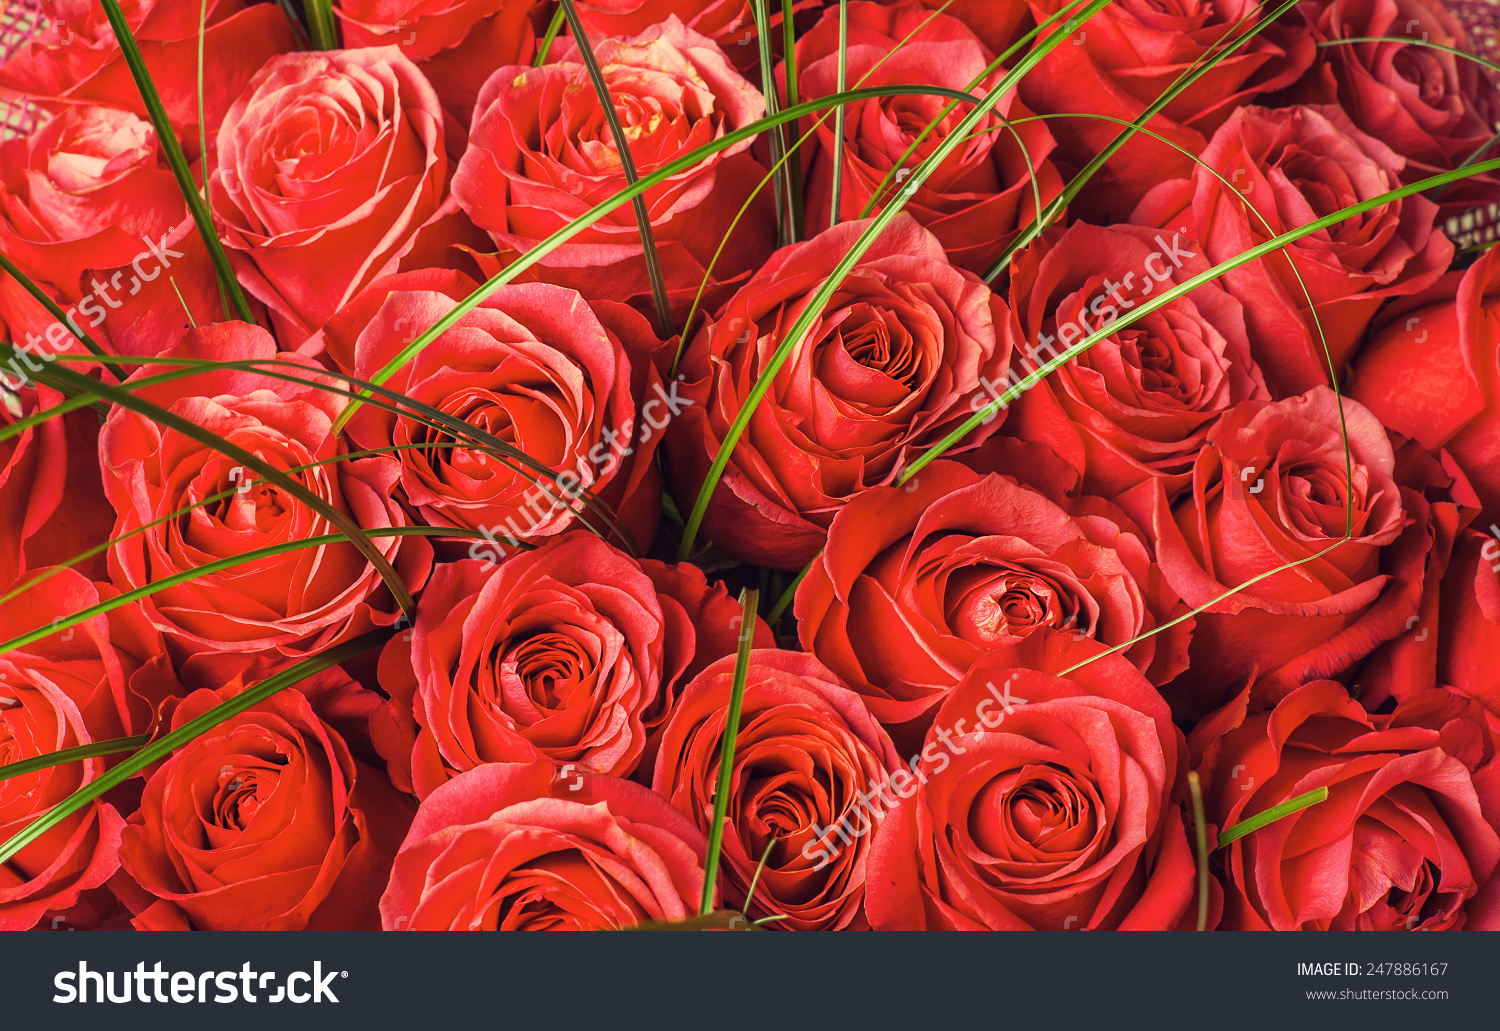 Picture of a big bunch of flowers clip art freeuse library Big Bunch Beautiful Red Roses Flowers Stock Photo 247886167 ... clip art freeuse library